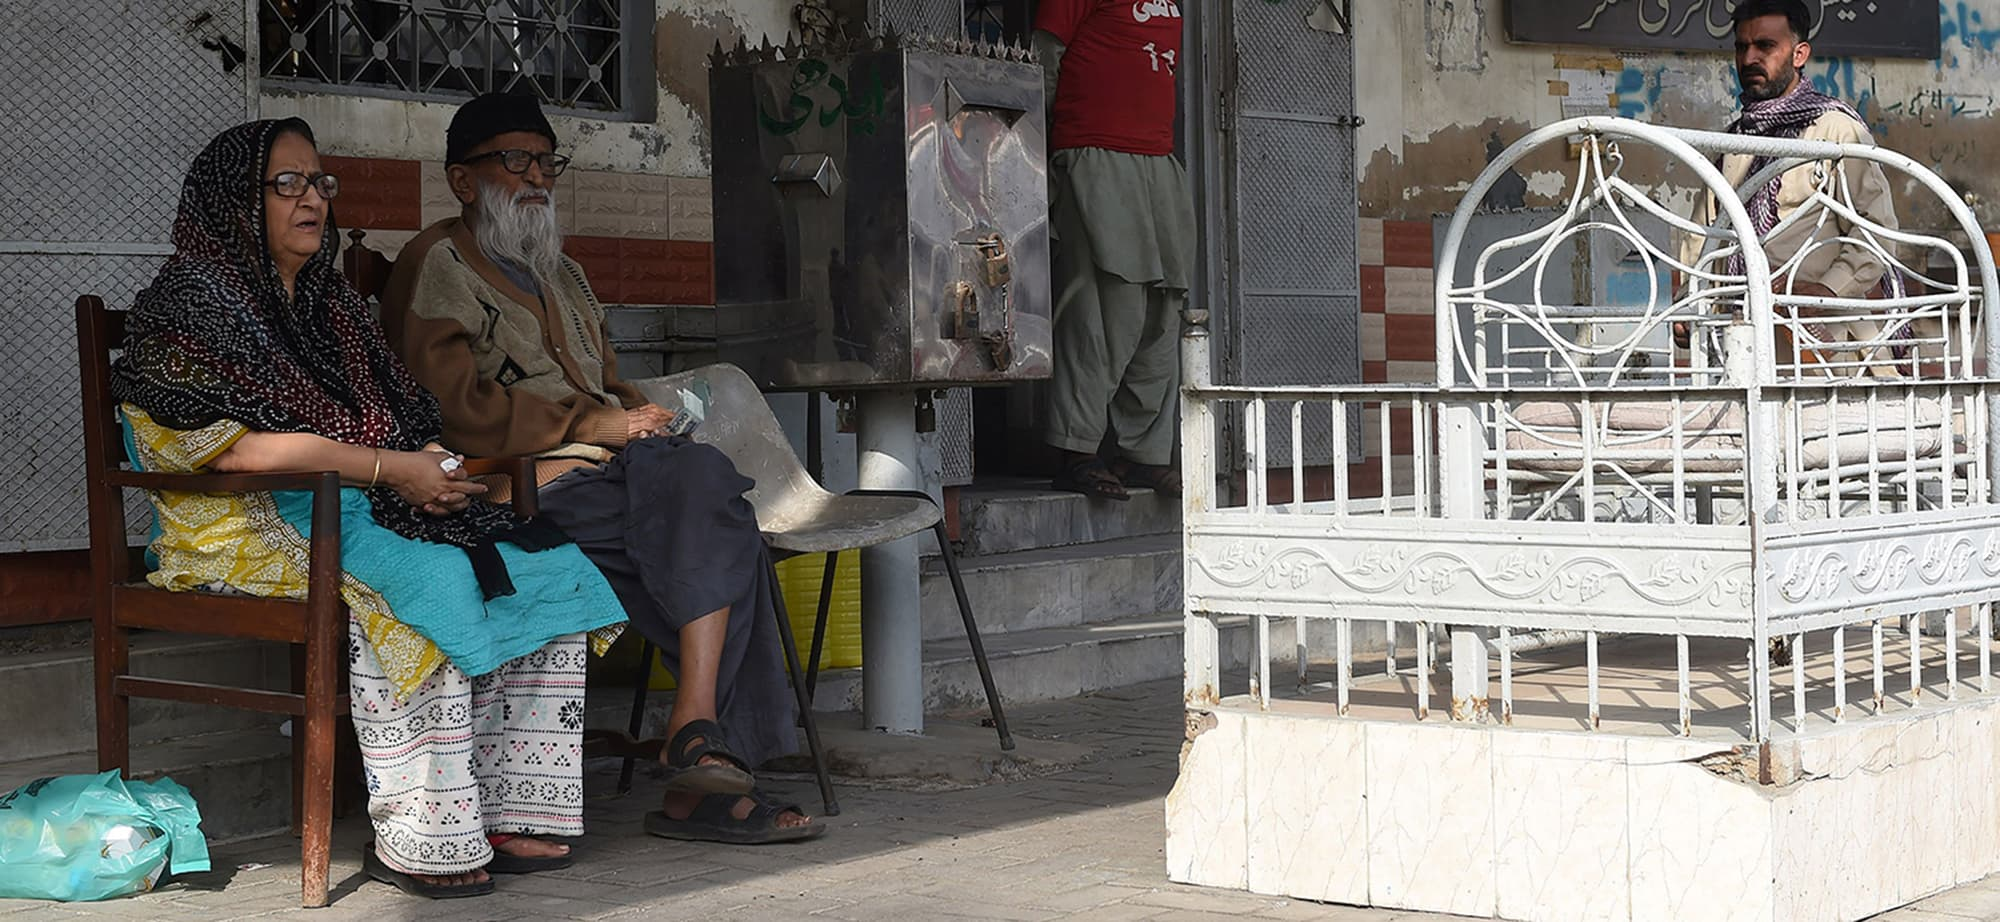 "In this photograph taken on February 15, 2016, Abdul Sattar Edhi (2nd L), the head of Edhi Foundation, sits with his wife Bilquis Edhi outside his office in the port city of Karachi.  He created a charitable empire out of nothing, masterminding Pakistan's largest welfare organisation. Today Abdul Sattar Edhi is revered by many as a national hero. / AFP PHOTO / ASIF HASSAN / To go with "" Pakistan-Social-Health' FEATURE by Caroline Nelly Perrot — AFP or licensors"